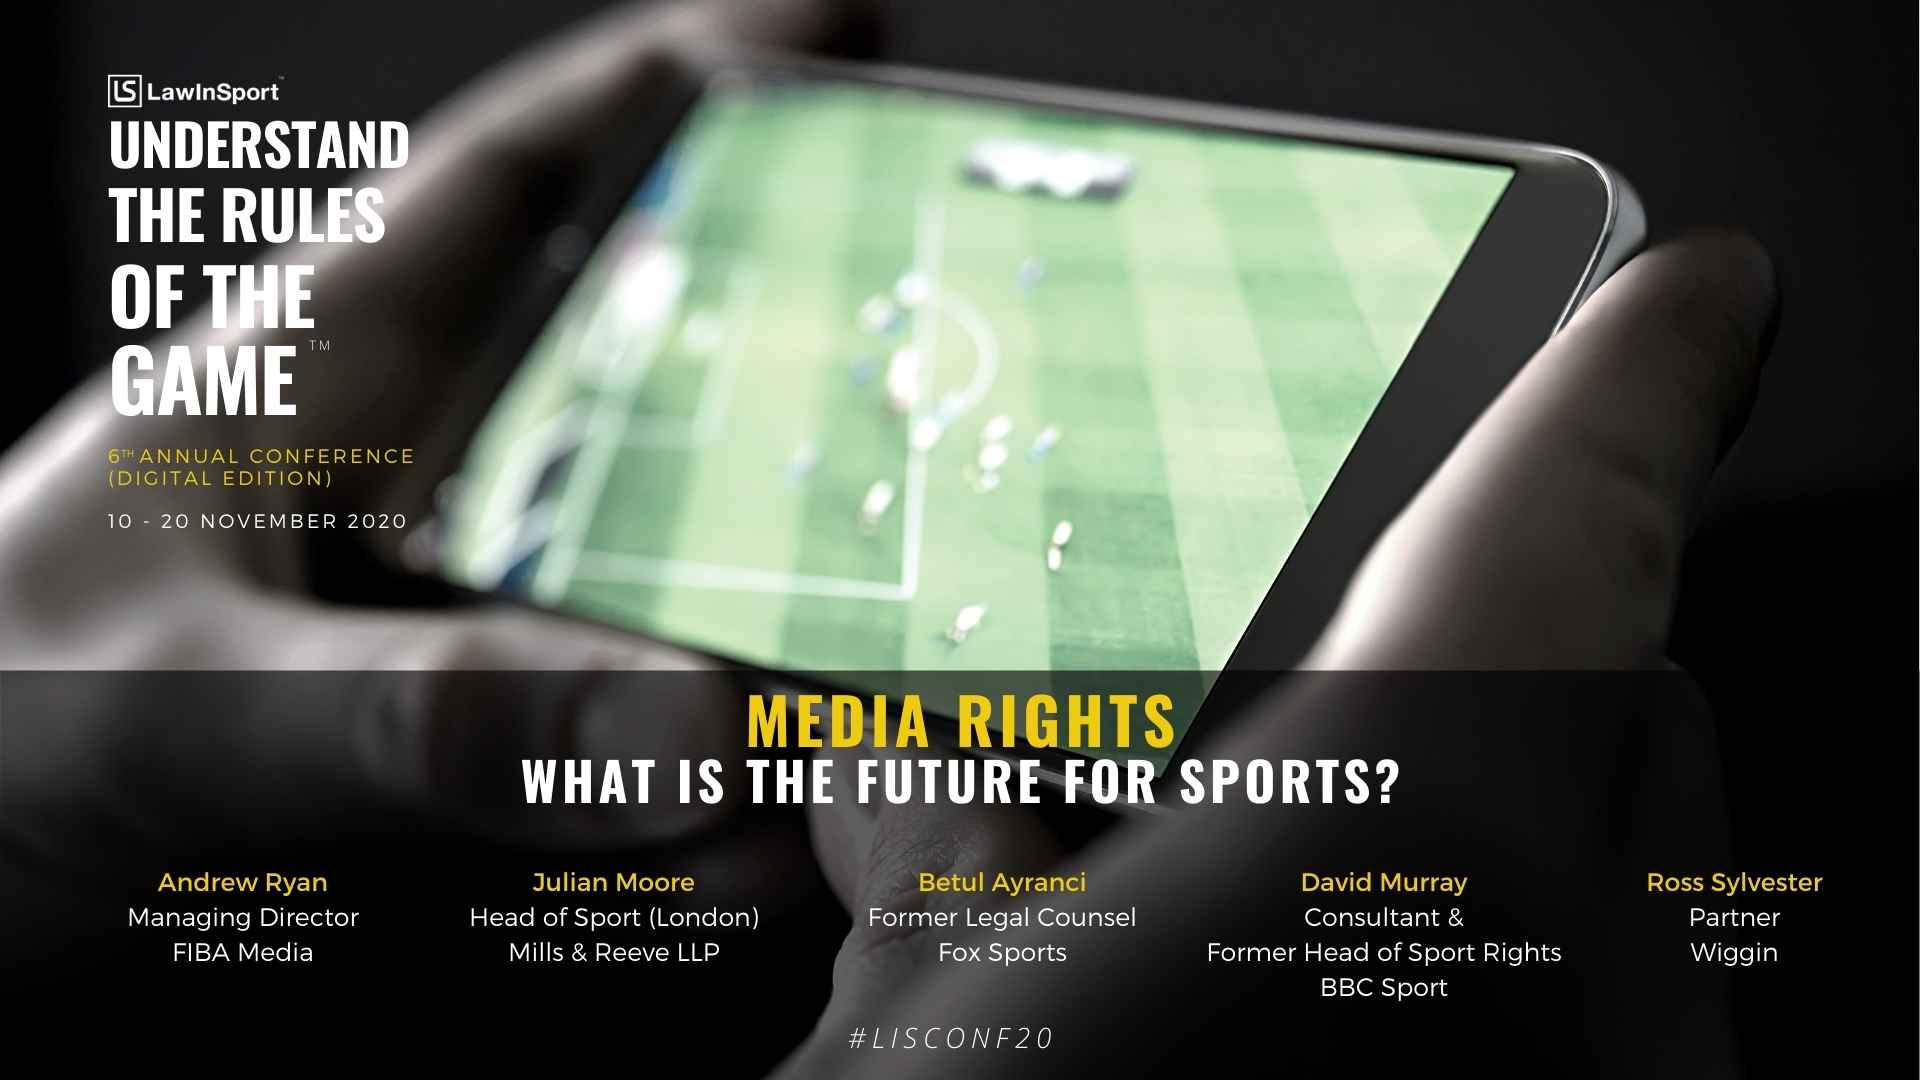 The future of sports media rights to be discussed at the LawInSport 6th Annual Conference 2020